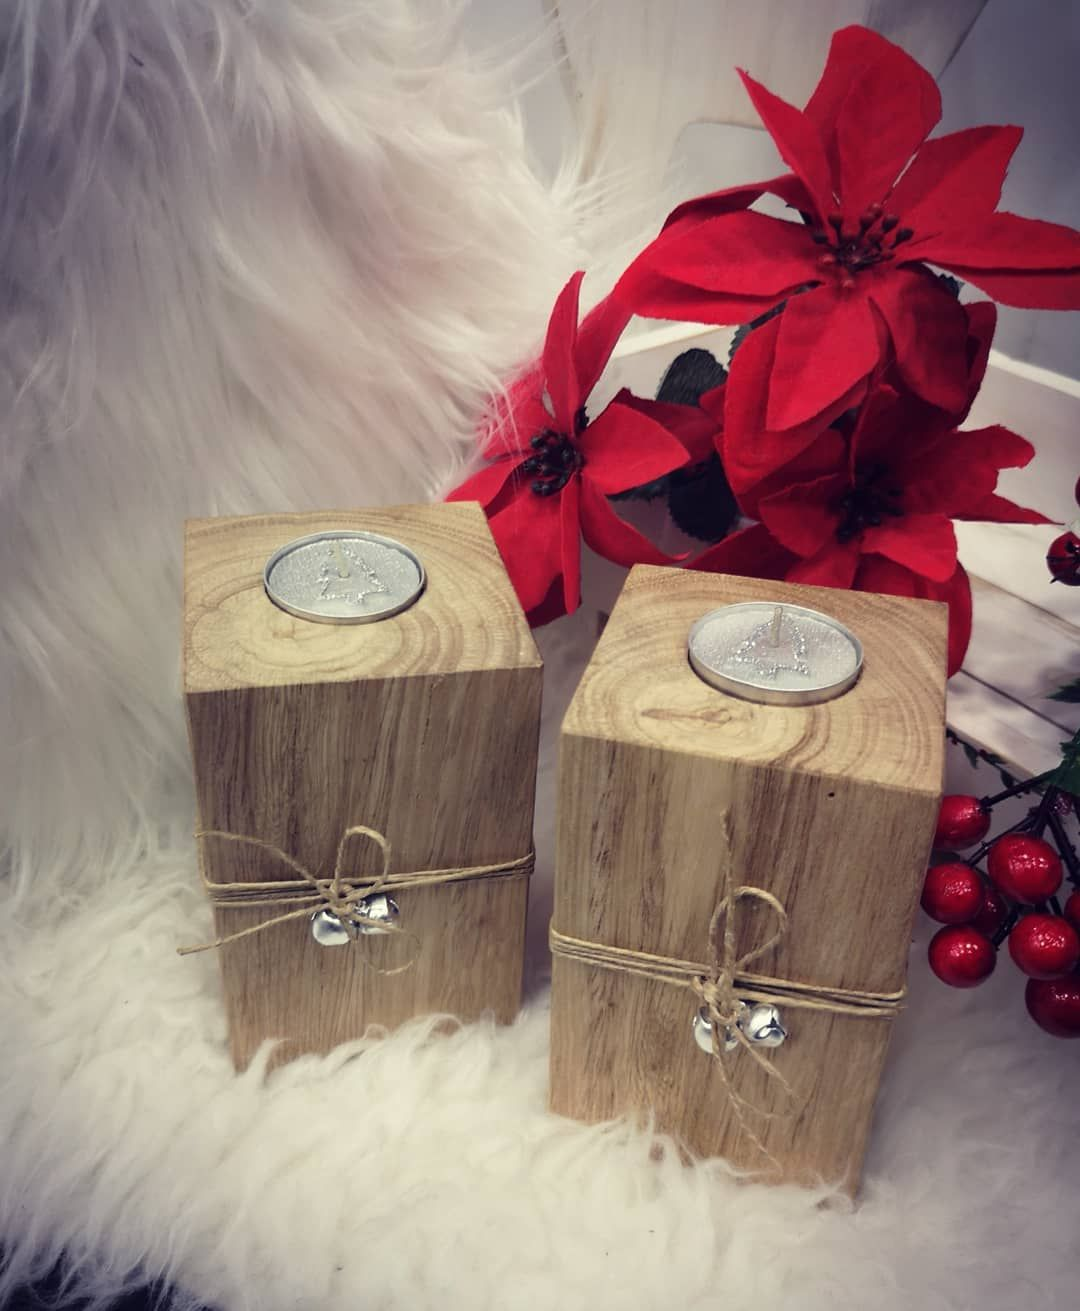 Christmas candles, -      Christmas candles,💛💛💛 #christmasdecor #christmas #christmastime #christmasmagic #christmastree #christmaslights #seasonaldecor #instachristmas #christmaslovers #wooddecorations #pallet#recicling #joy#santa #hohoho #handmade #reciclyng #artists #xmas #xmasdecor #xmastime #xmastree #christmasandles #peace #love.     The Effective Pictures We Offer You About Wood Decor projects      A quality picture can tell you many things. You can find the most beautiful pictures tha